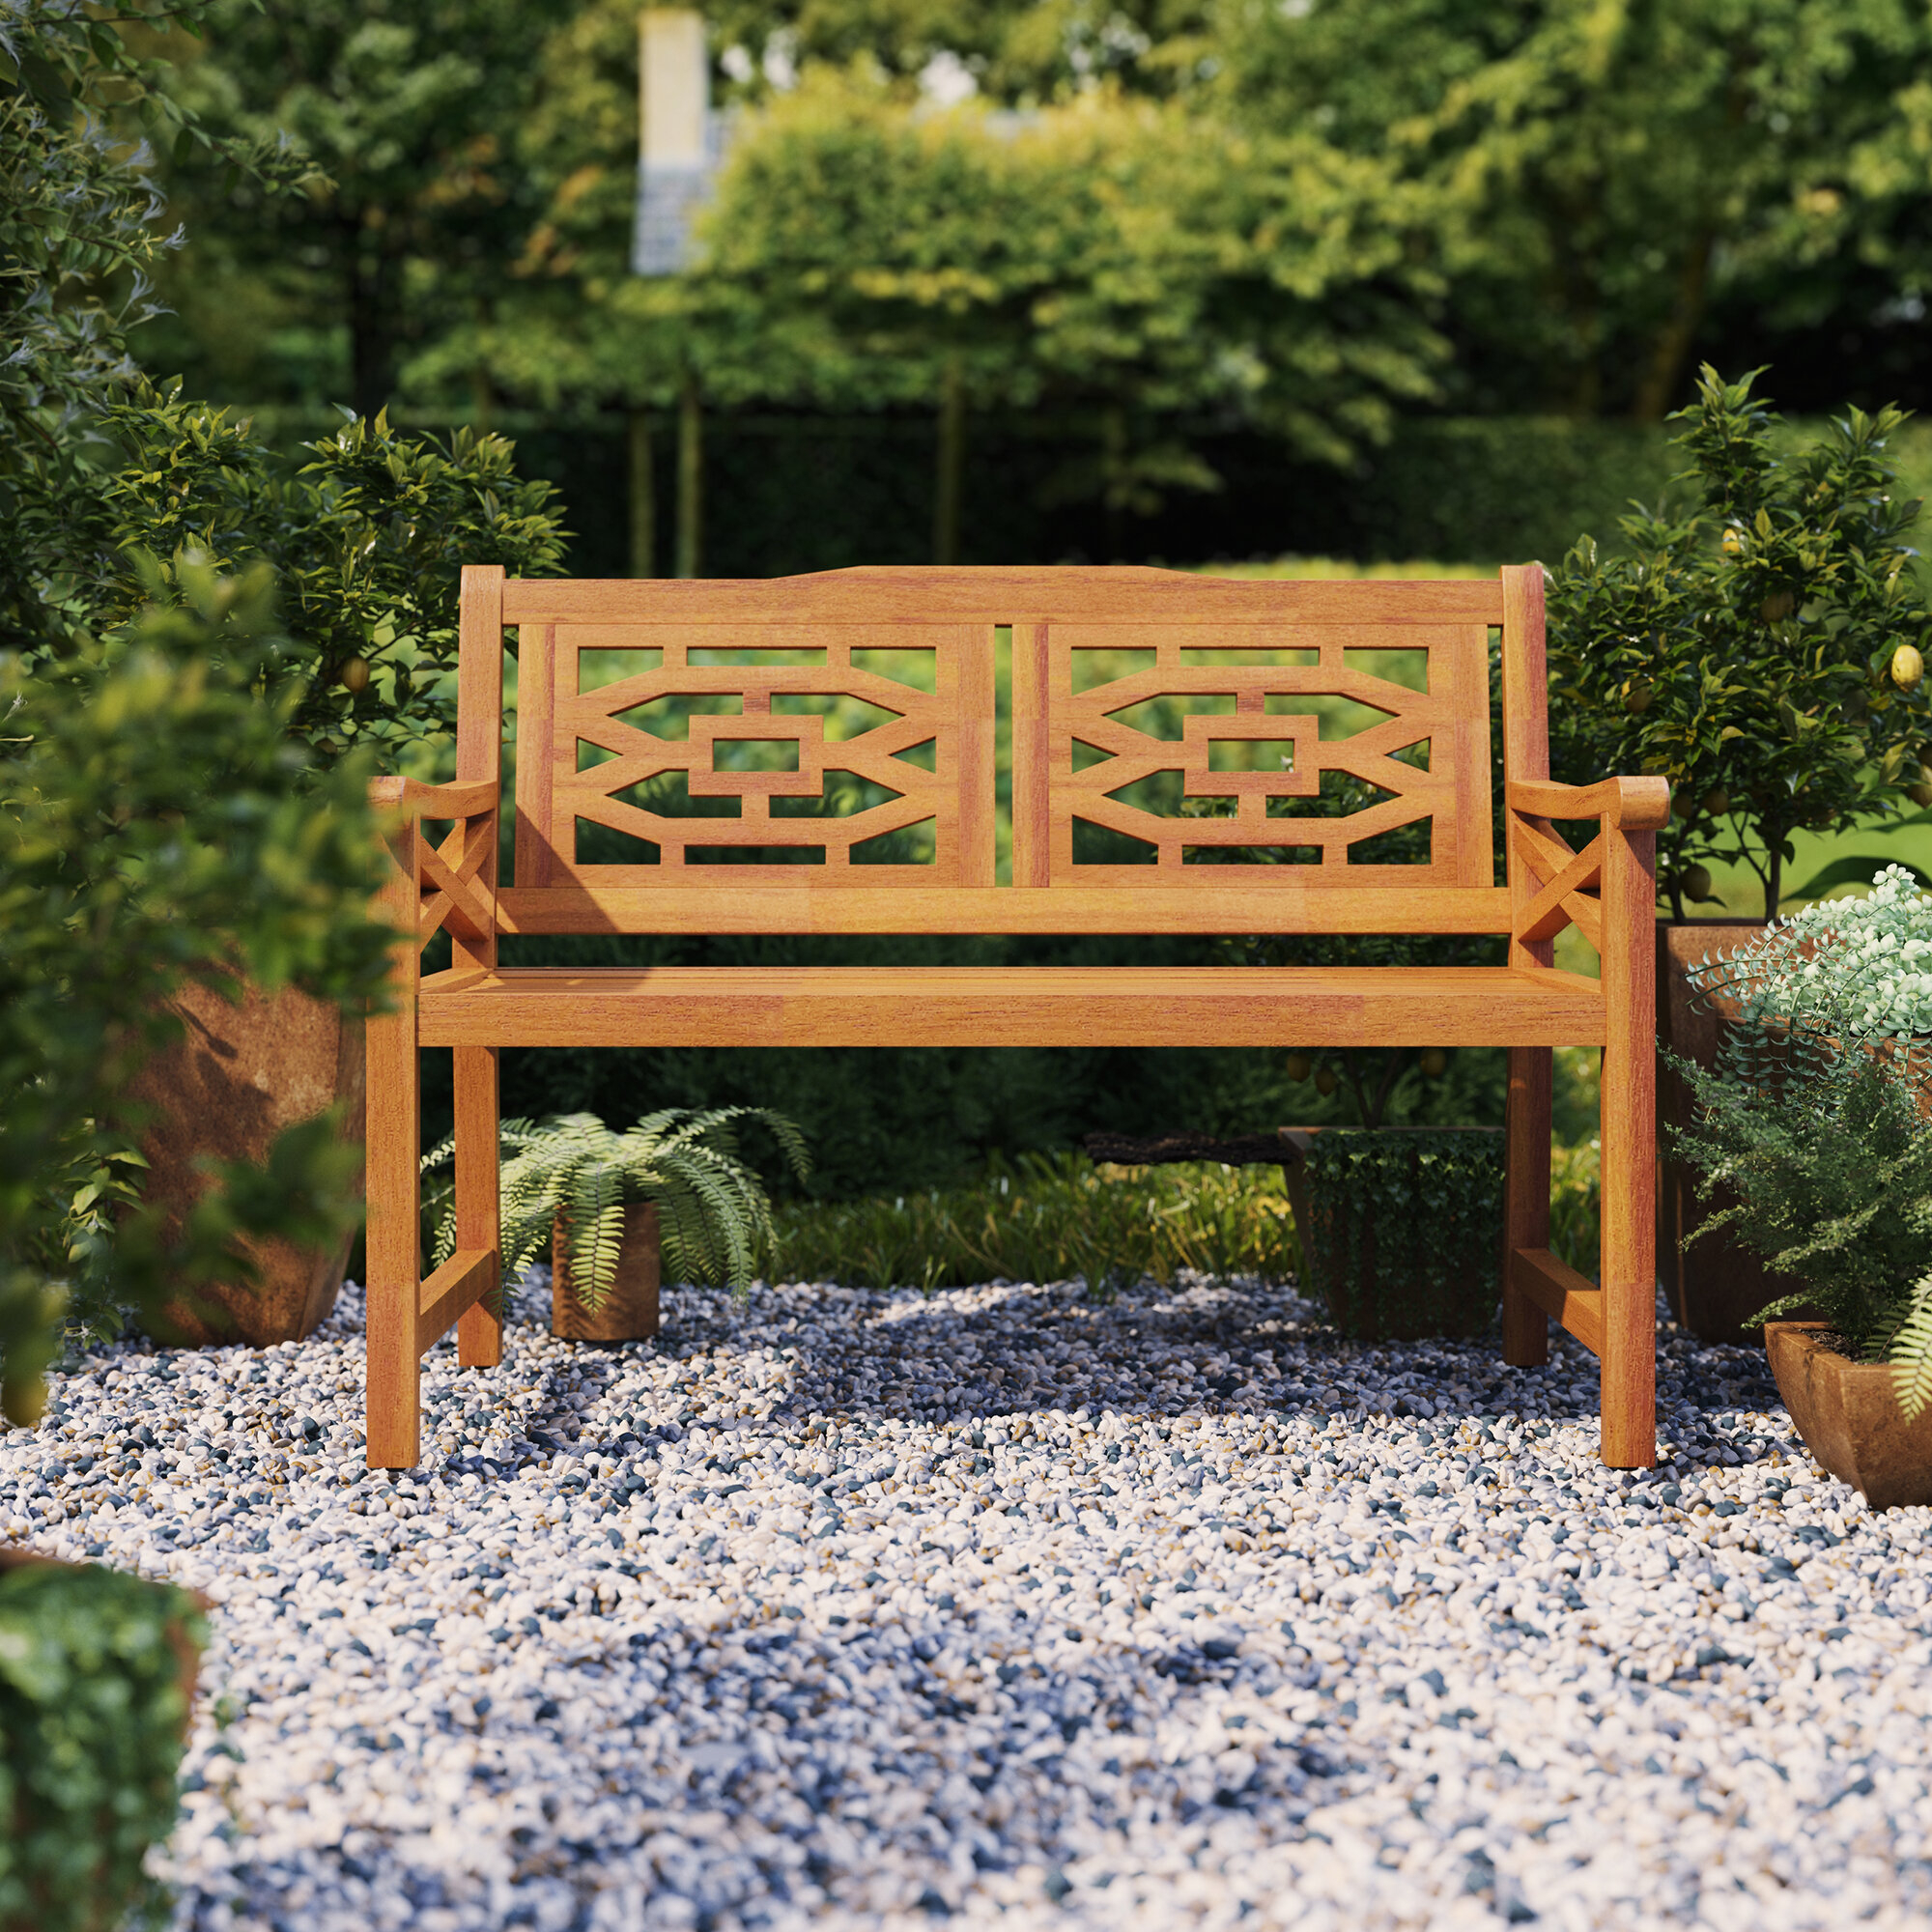 Beeches Wooden Garden Bench Throughout Ahana Wooden Garden Benches (View 9 of 25)